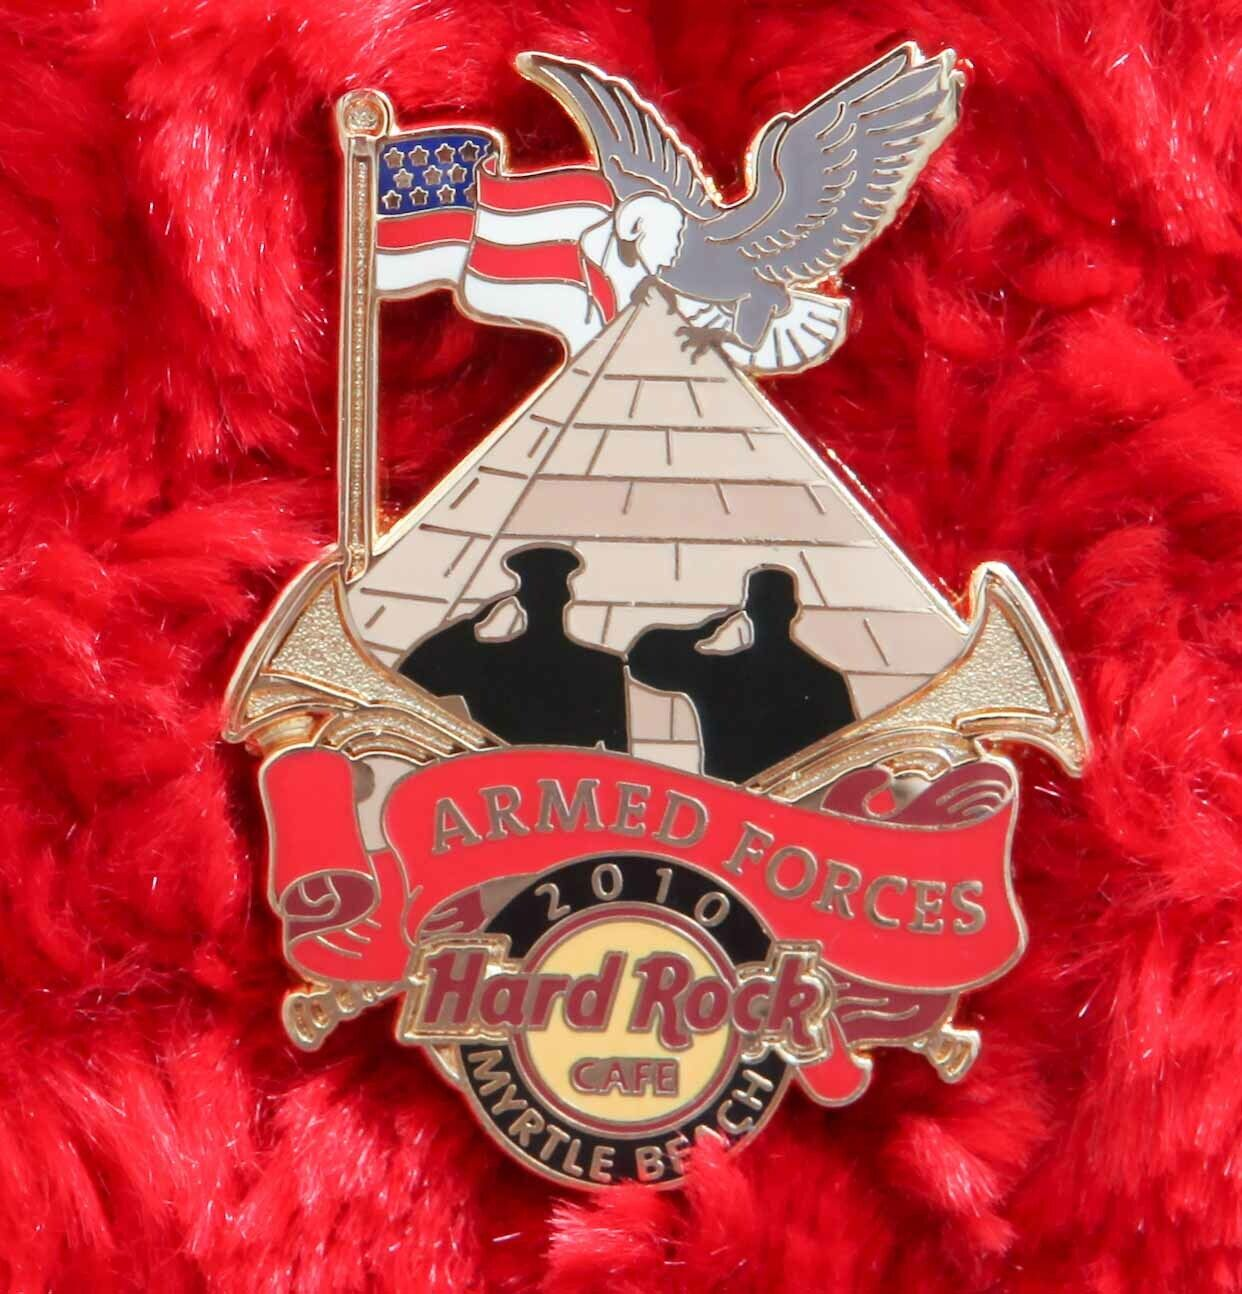 Hard Rock Cafe Pin Myrtle Beach ARMED FORCES Pyramid American Flag Eagle Lapel - $16.99